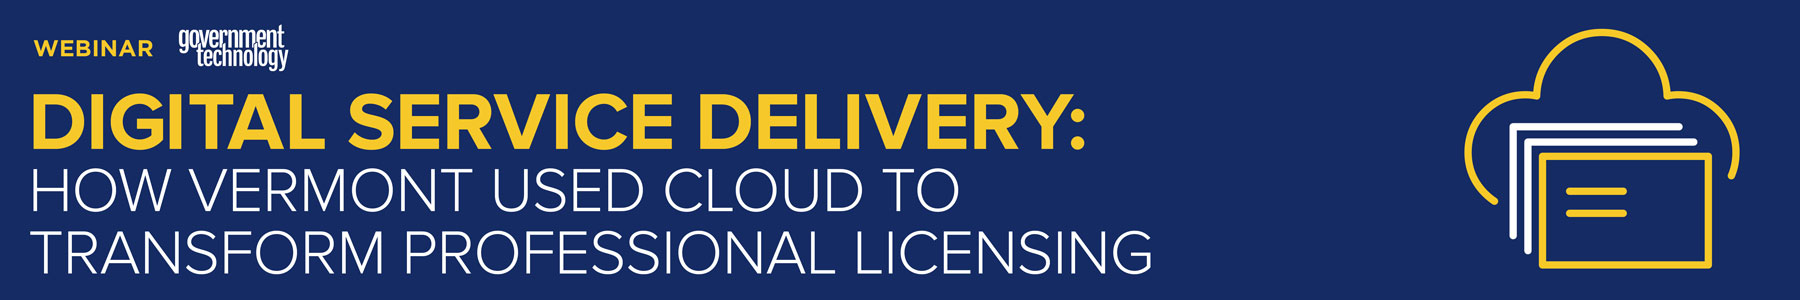 Digital Service Delivery: How Vermont Used Cloud to Transform Professional Licensing